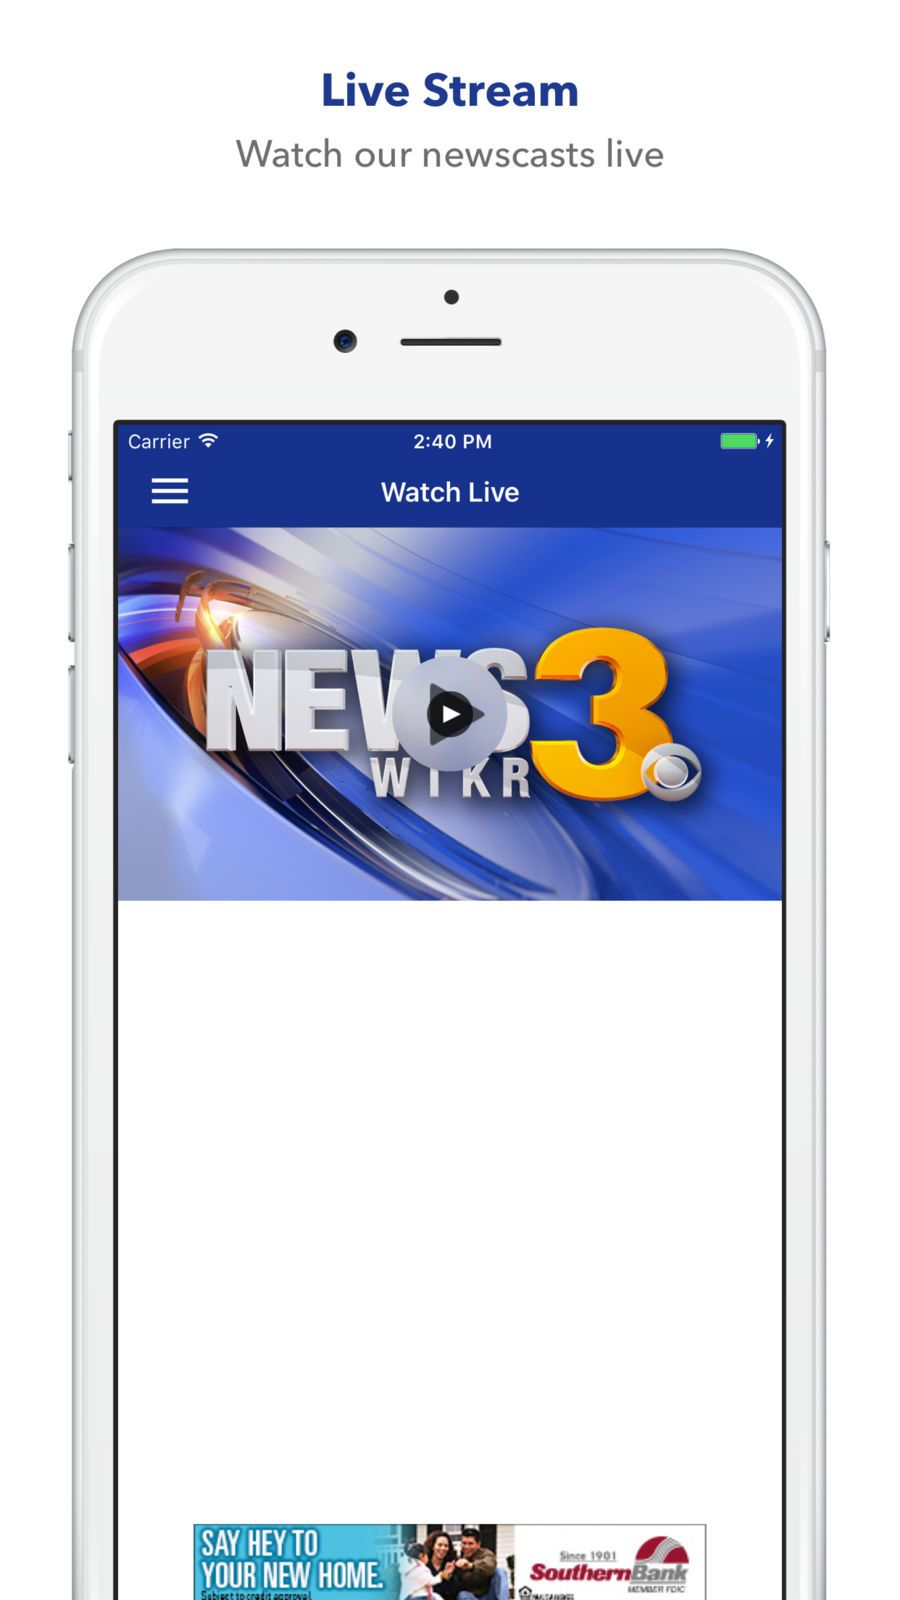 WTKR News 3 WeatherLLCappsios Ios apps, App, Apples